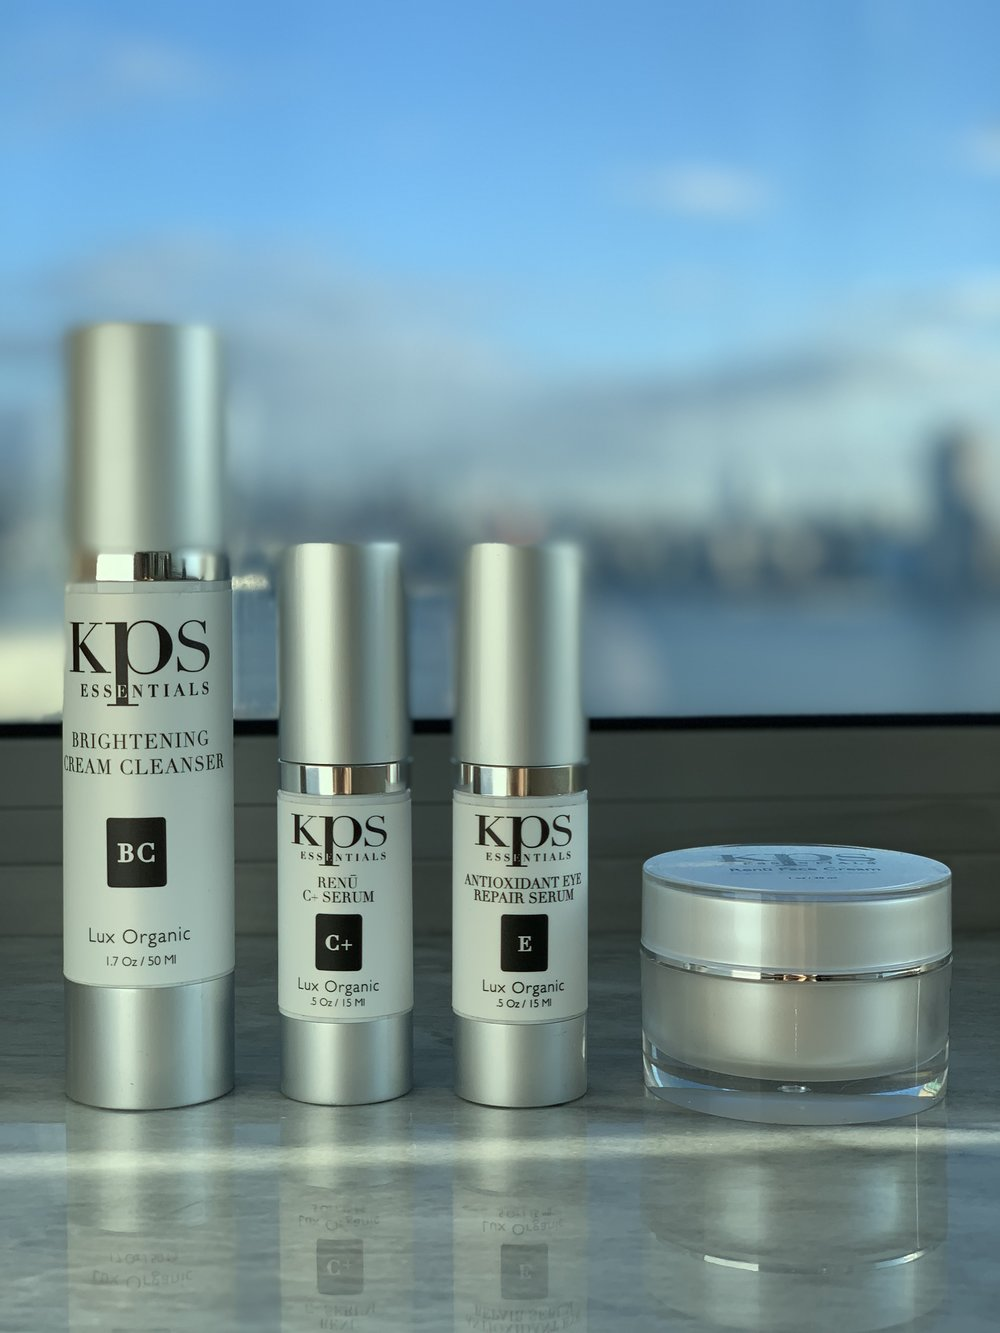 Several of the products in the KPS smart skin care line-up.